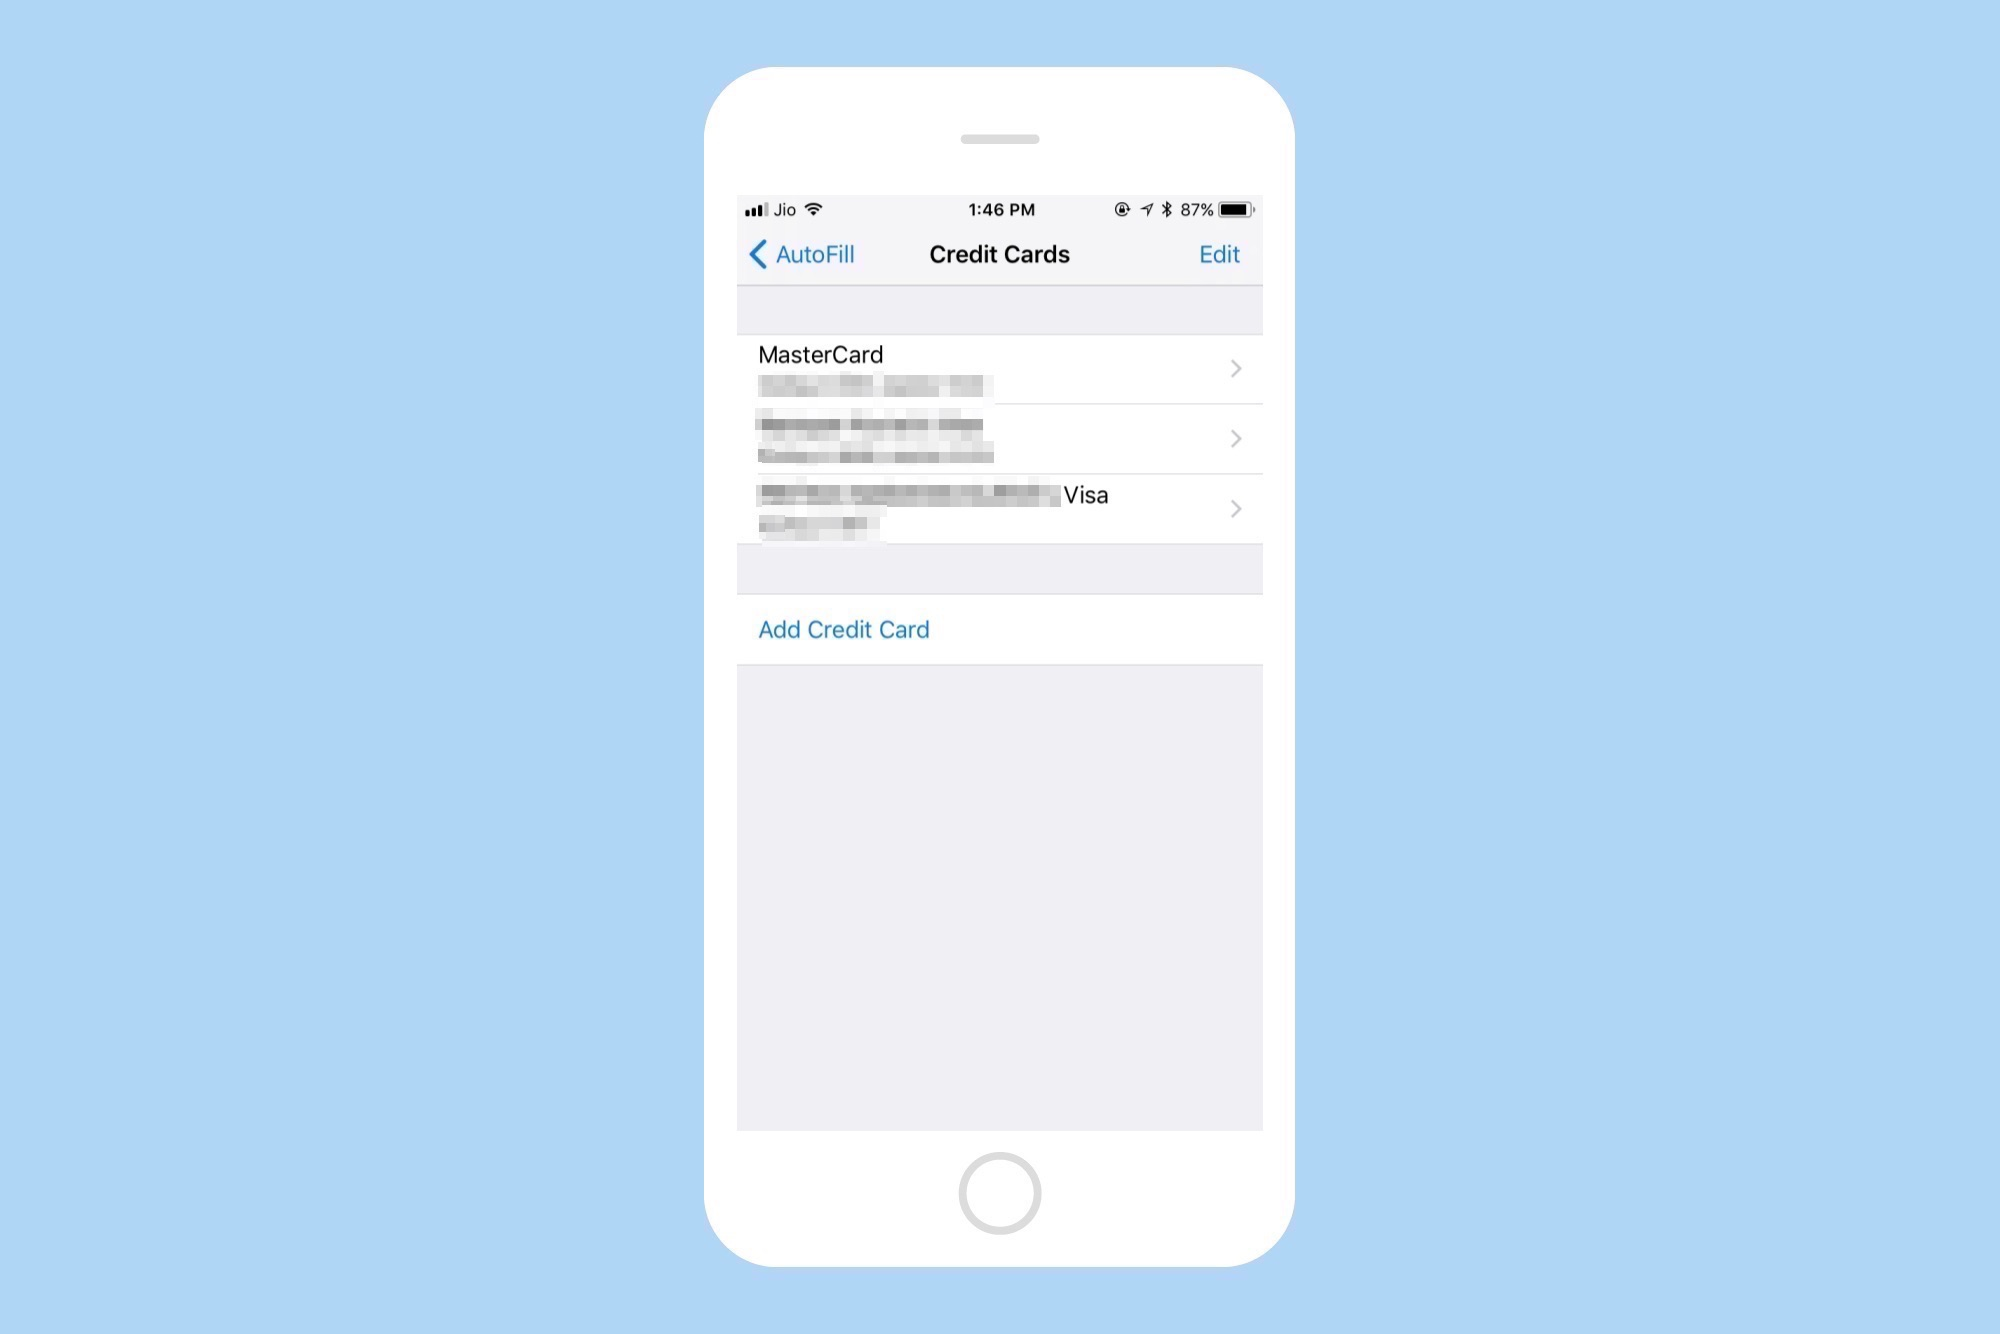 How to use iCloud Keychain to sync passwords across Apple devices